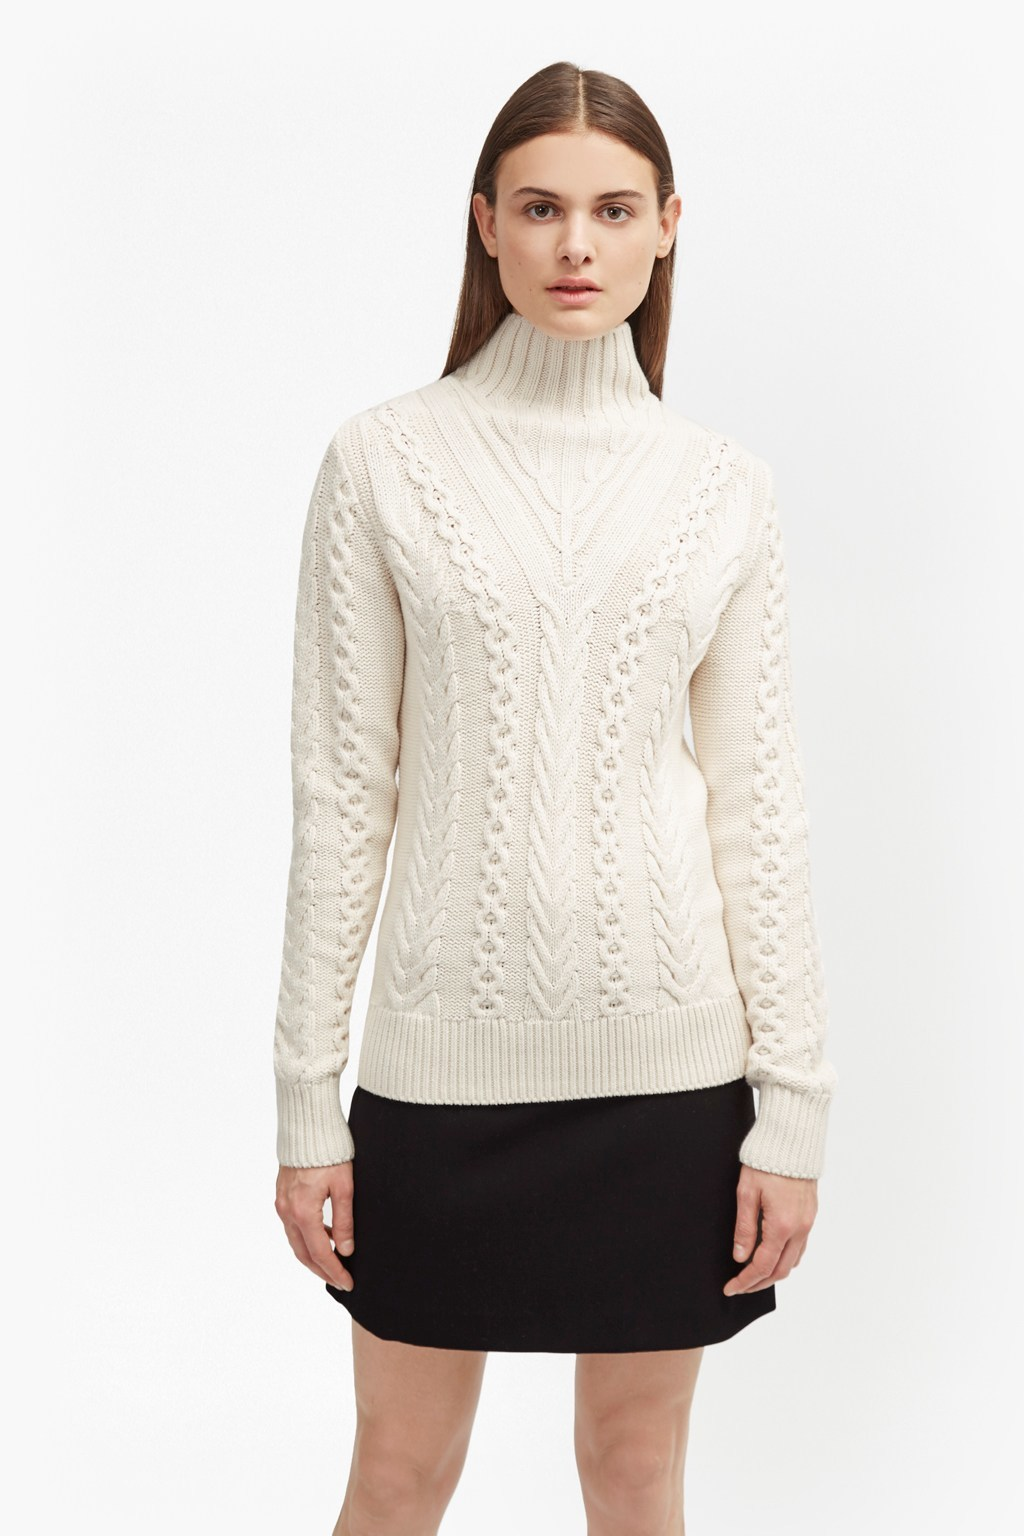 Cable Knit High Neck Jumper Classic Cream - neckline: high neck; style: standard; pattern: cable knit; predominant colour: ivory/cream; occasions: casual; length: standard; fibres: cotton - mix; fit: standard fit; sleeve length: long sleeve; sleeve style: standard; texture group: knits/crochet; pattern type: knitted - other; season: a/w 2016; wardrobe: highlight